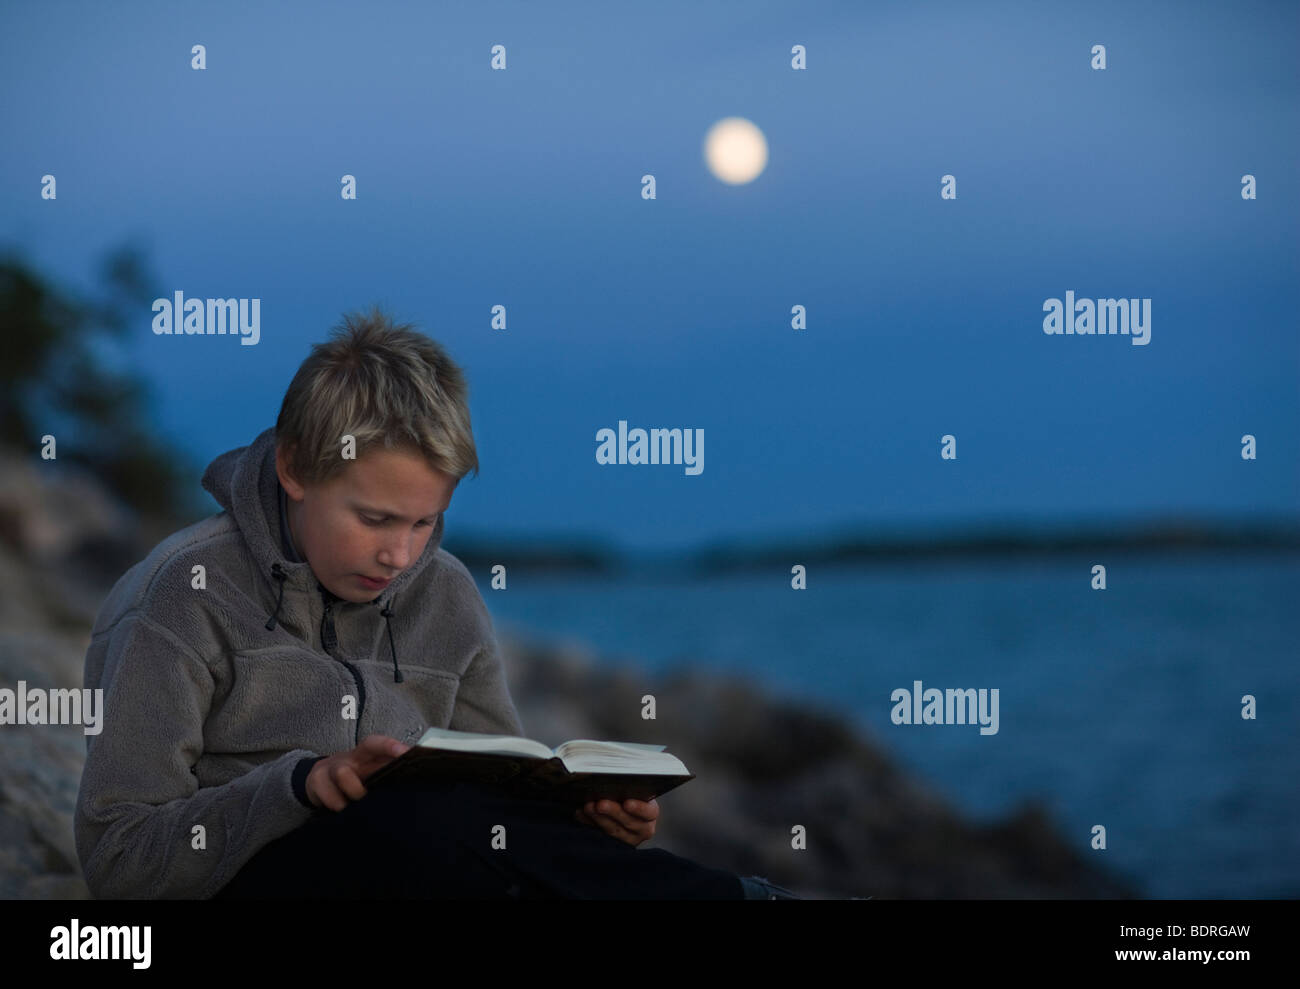 A boy reading a book in the moonlight - Stock Image